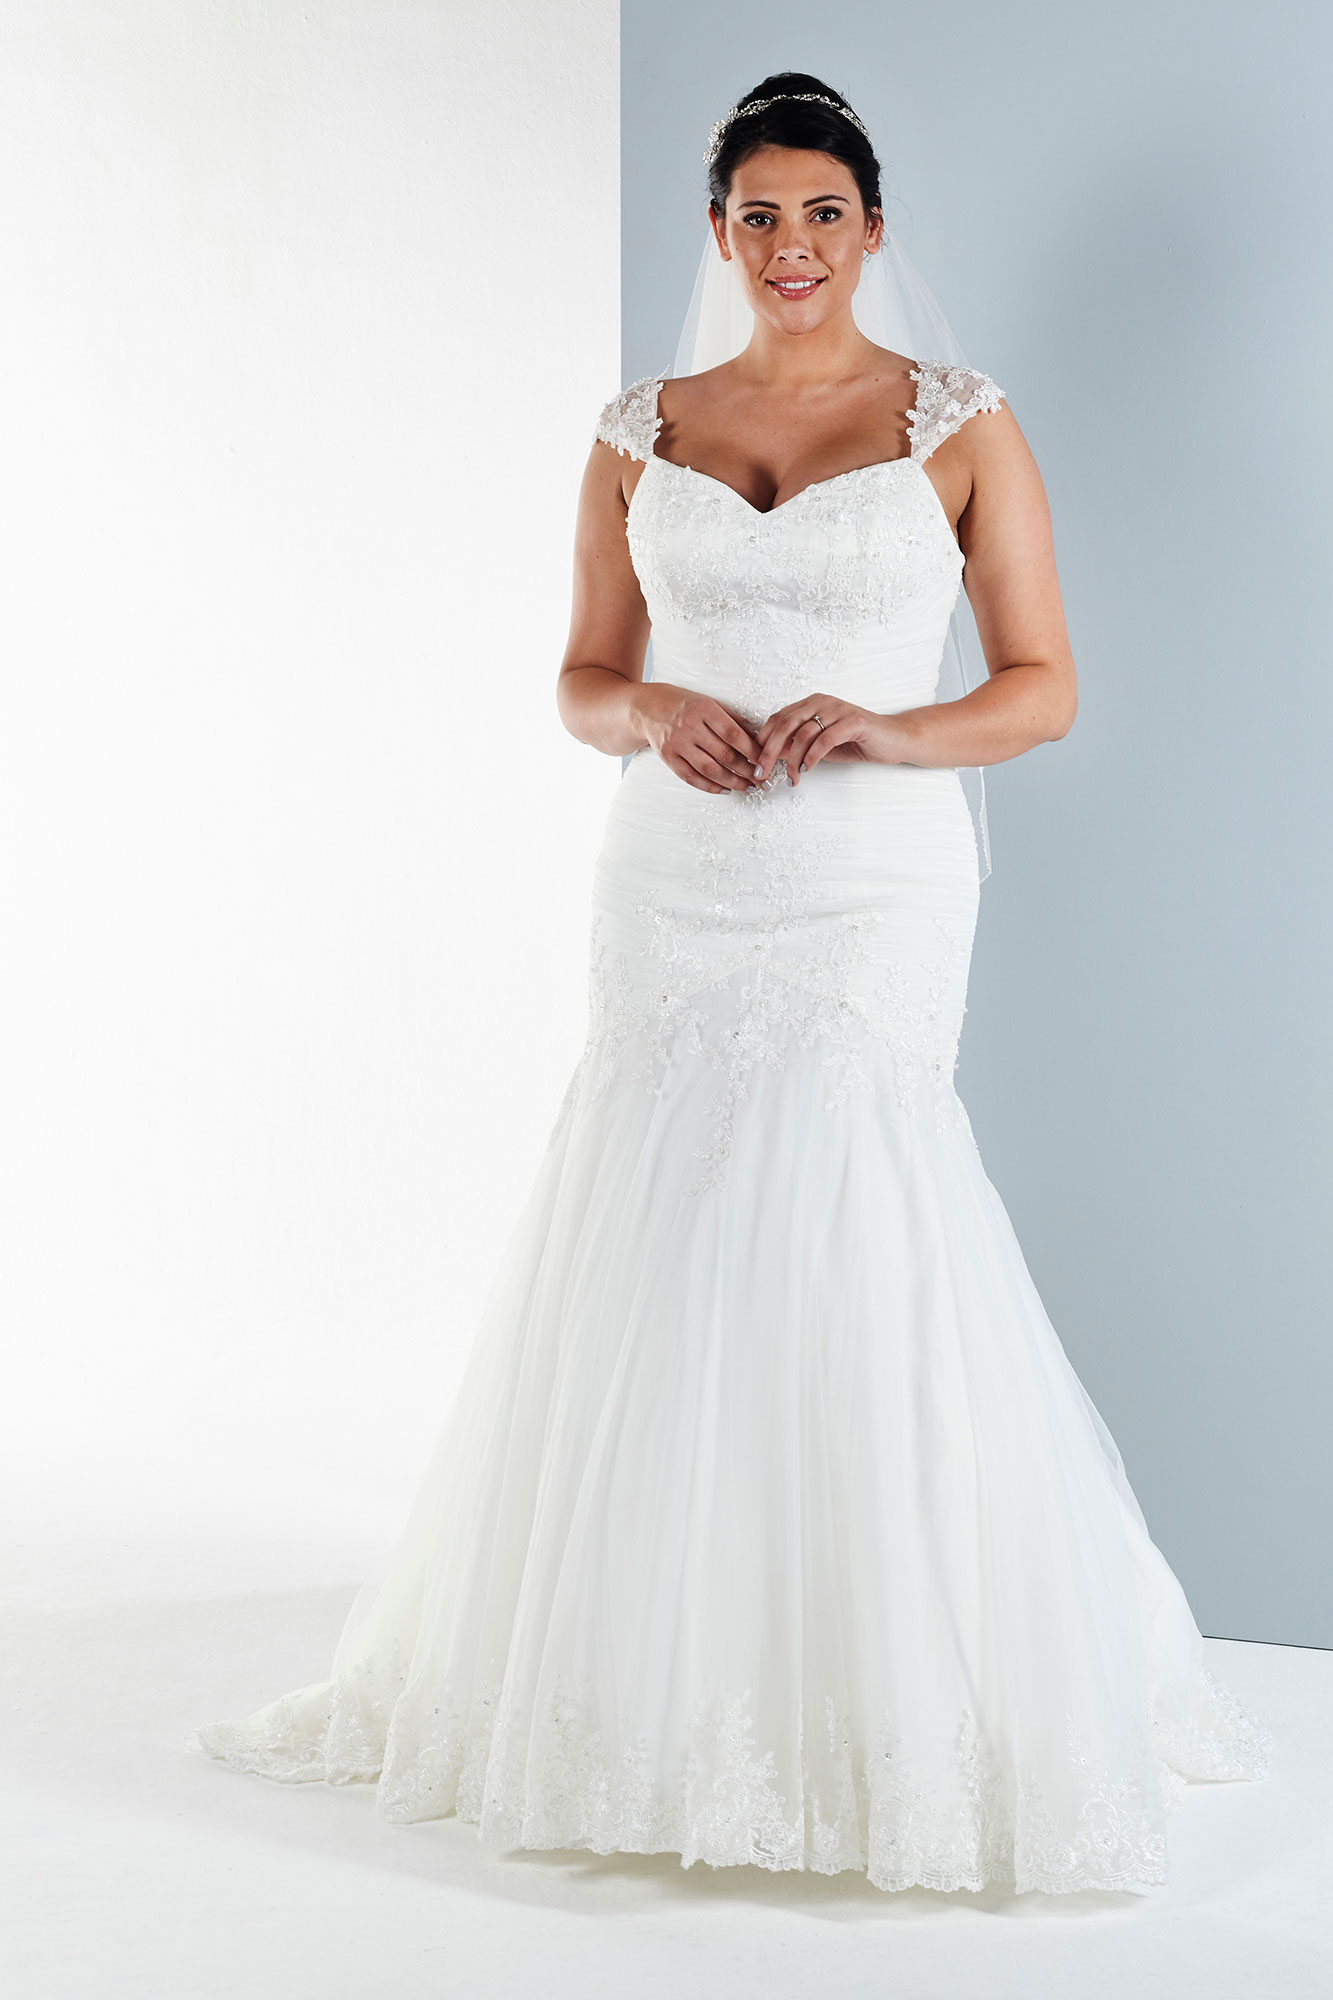 50a92c061a51 Wedding Dress - Avril - Luxury Discount Bridalwear